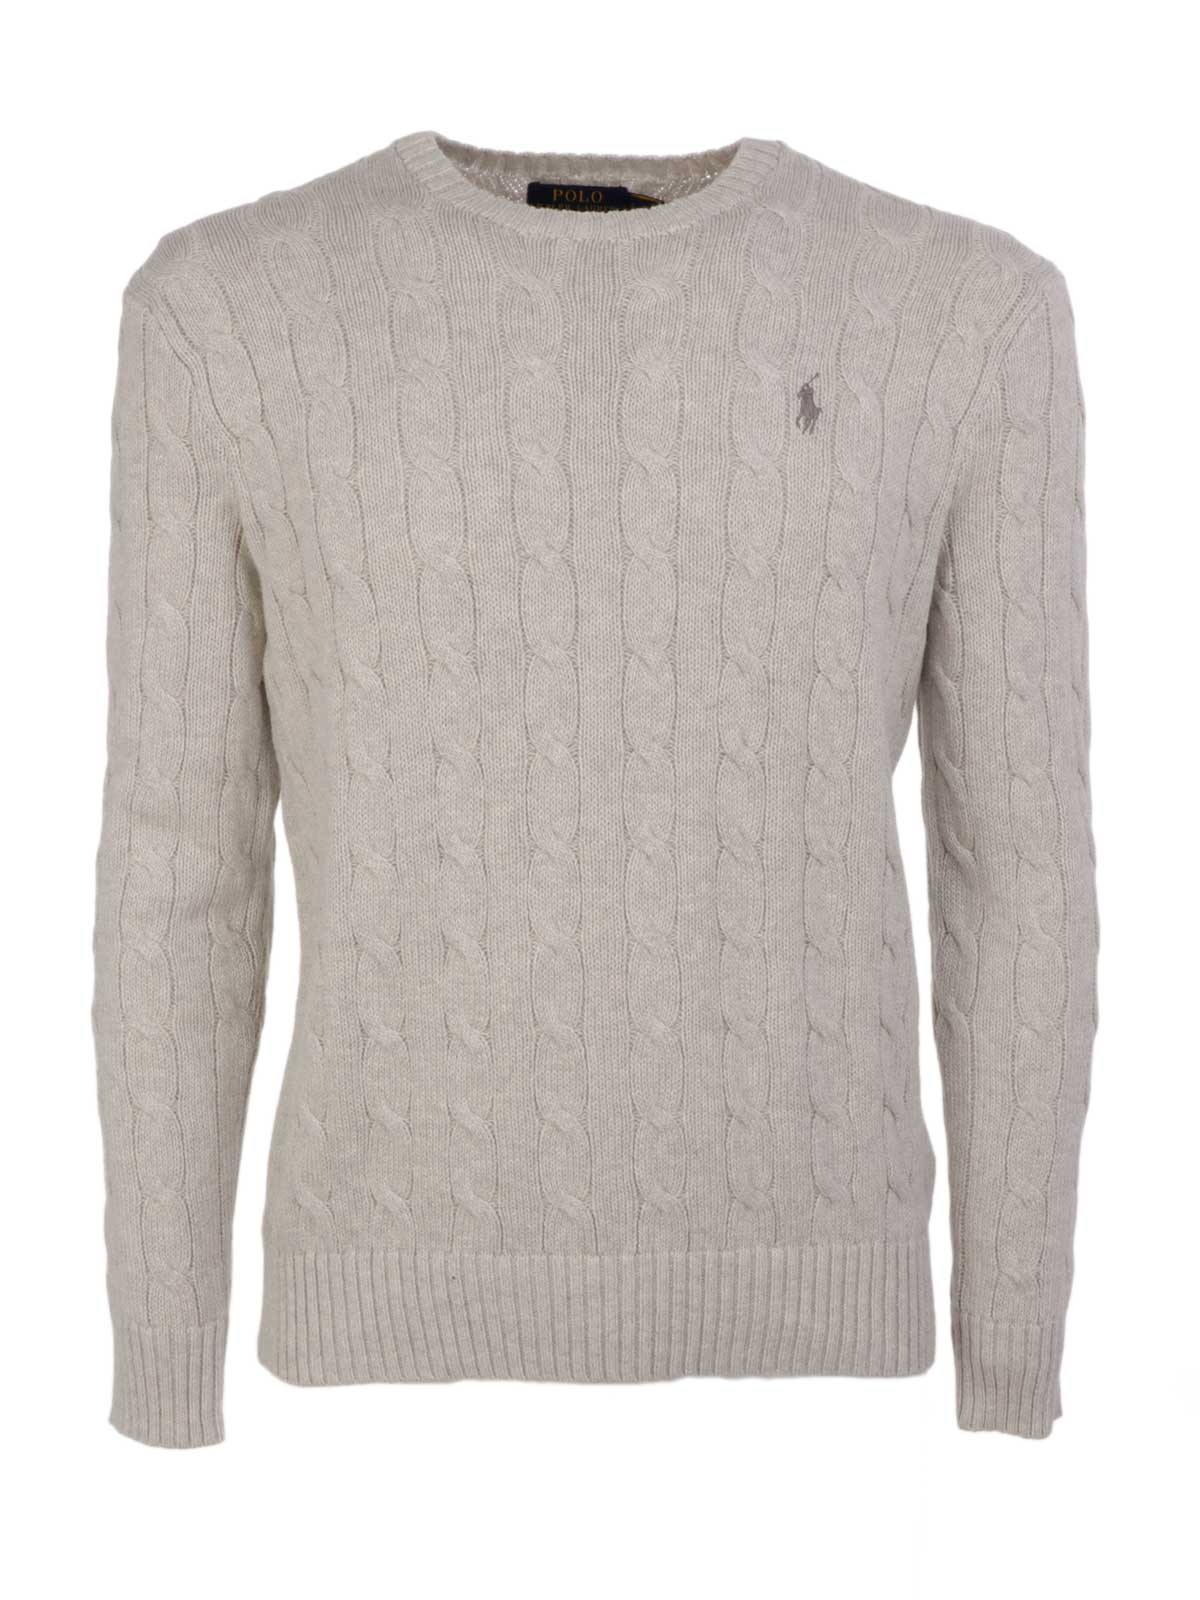 Picture of POLO RALPH LAUREN | Men's Cable-Knit Sweater